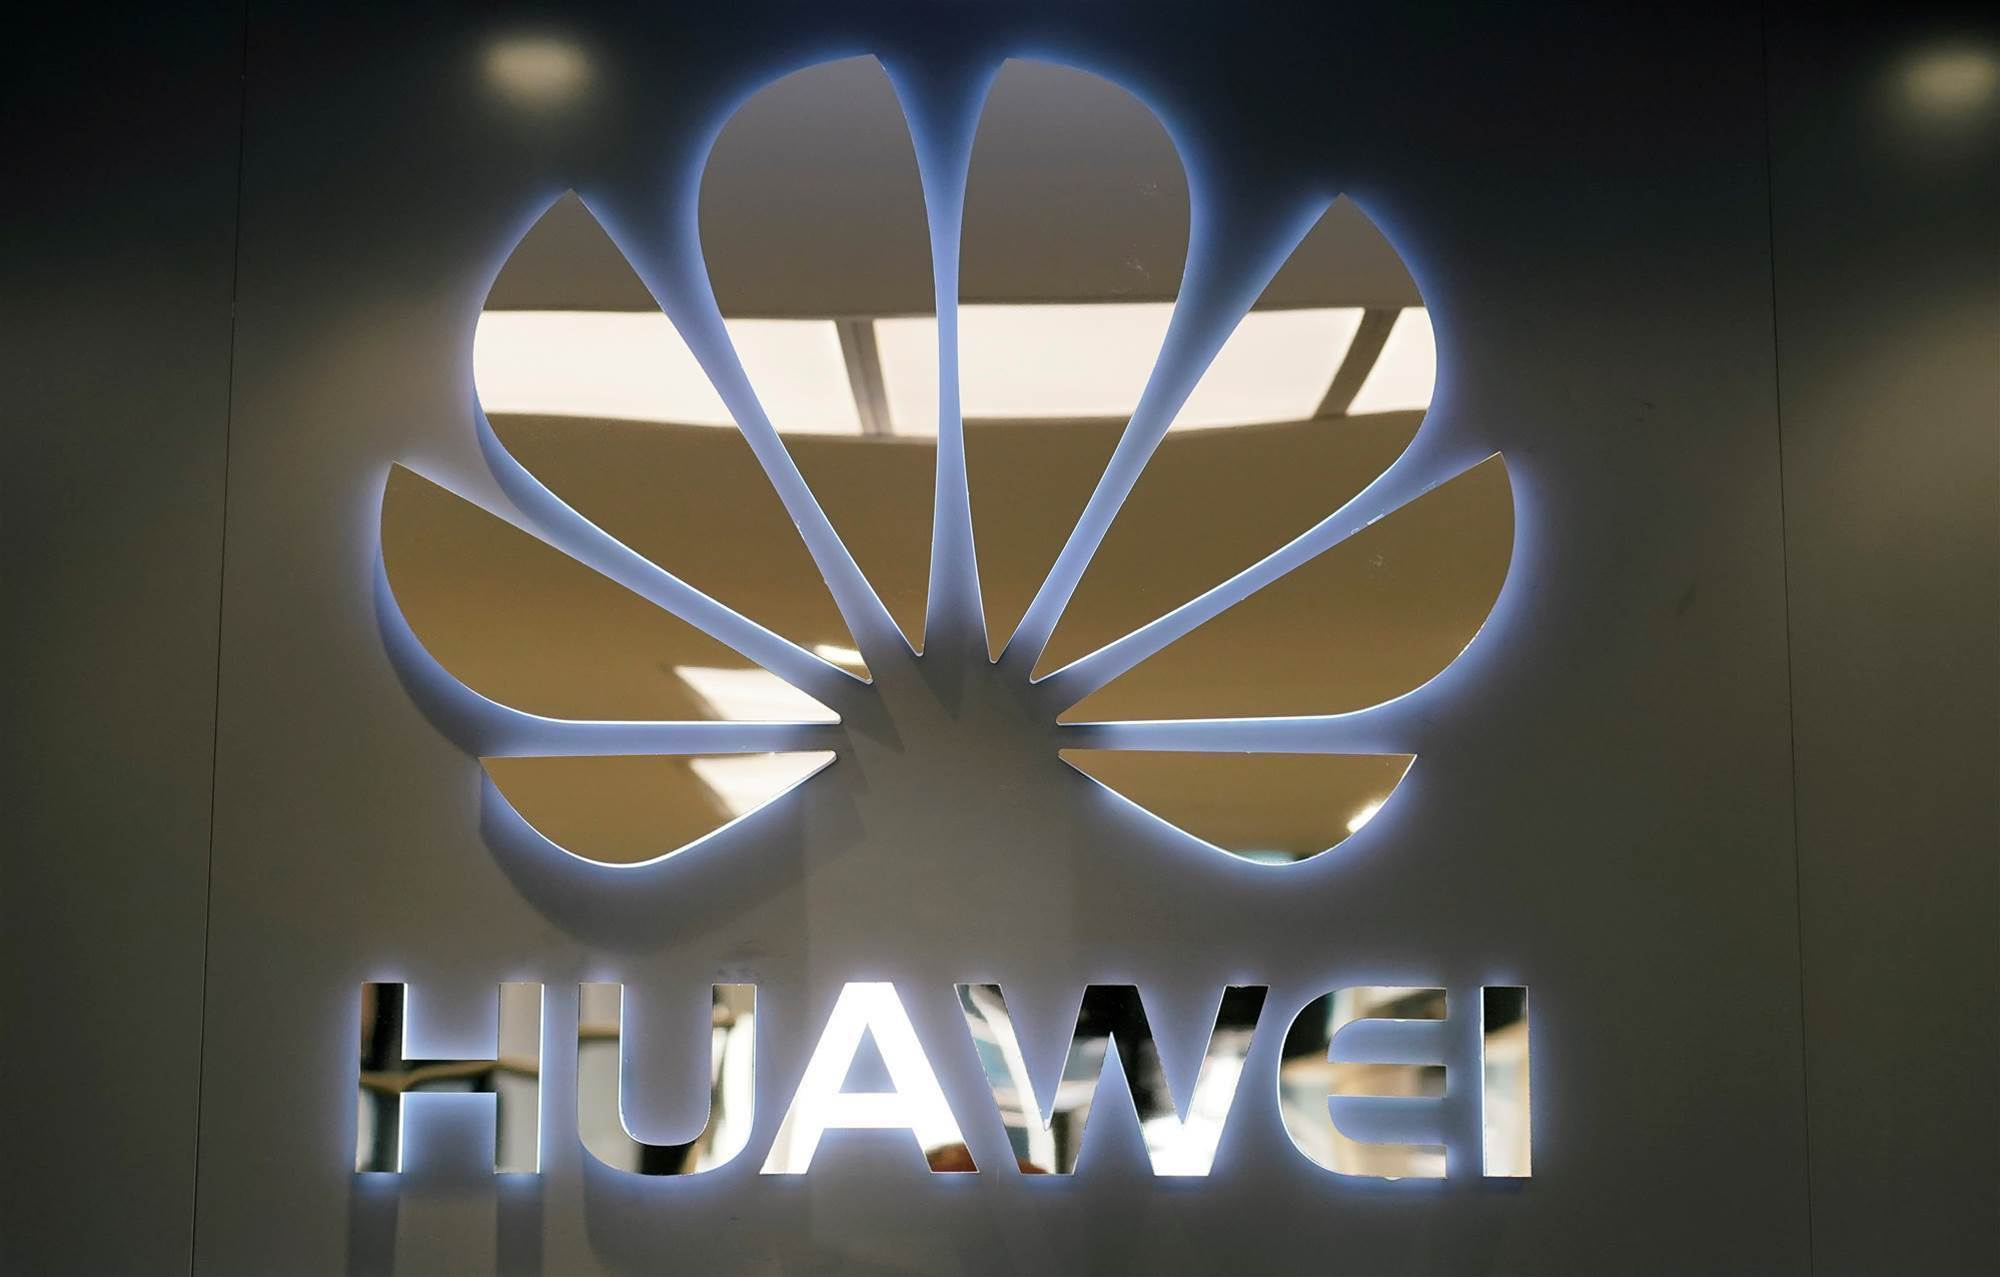 Huawei open to government oversight: exec